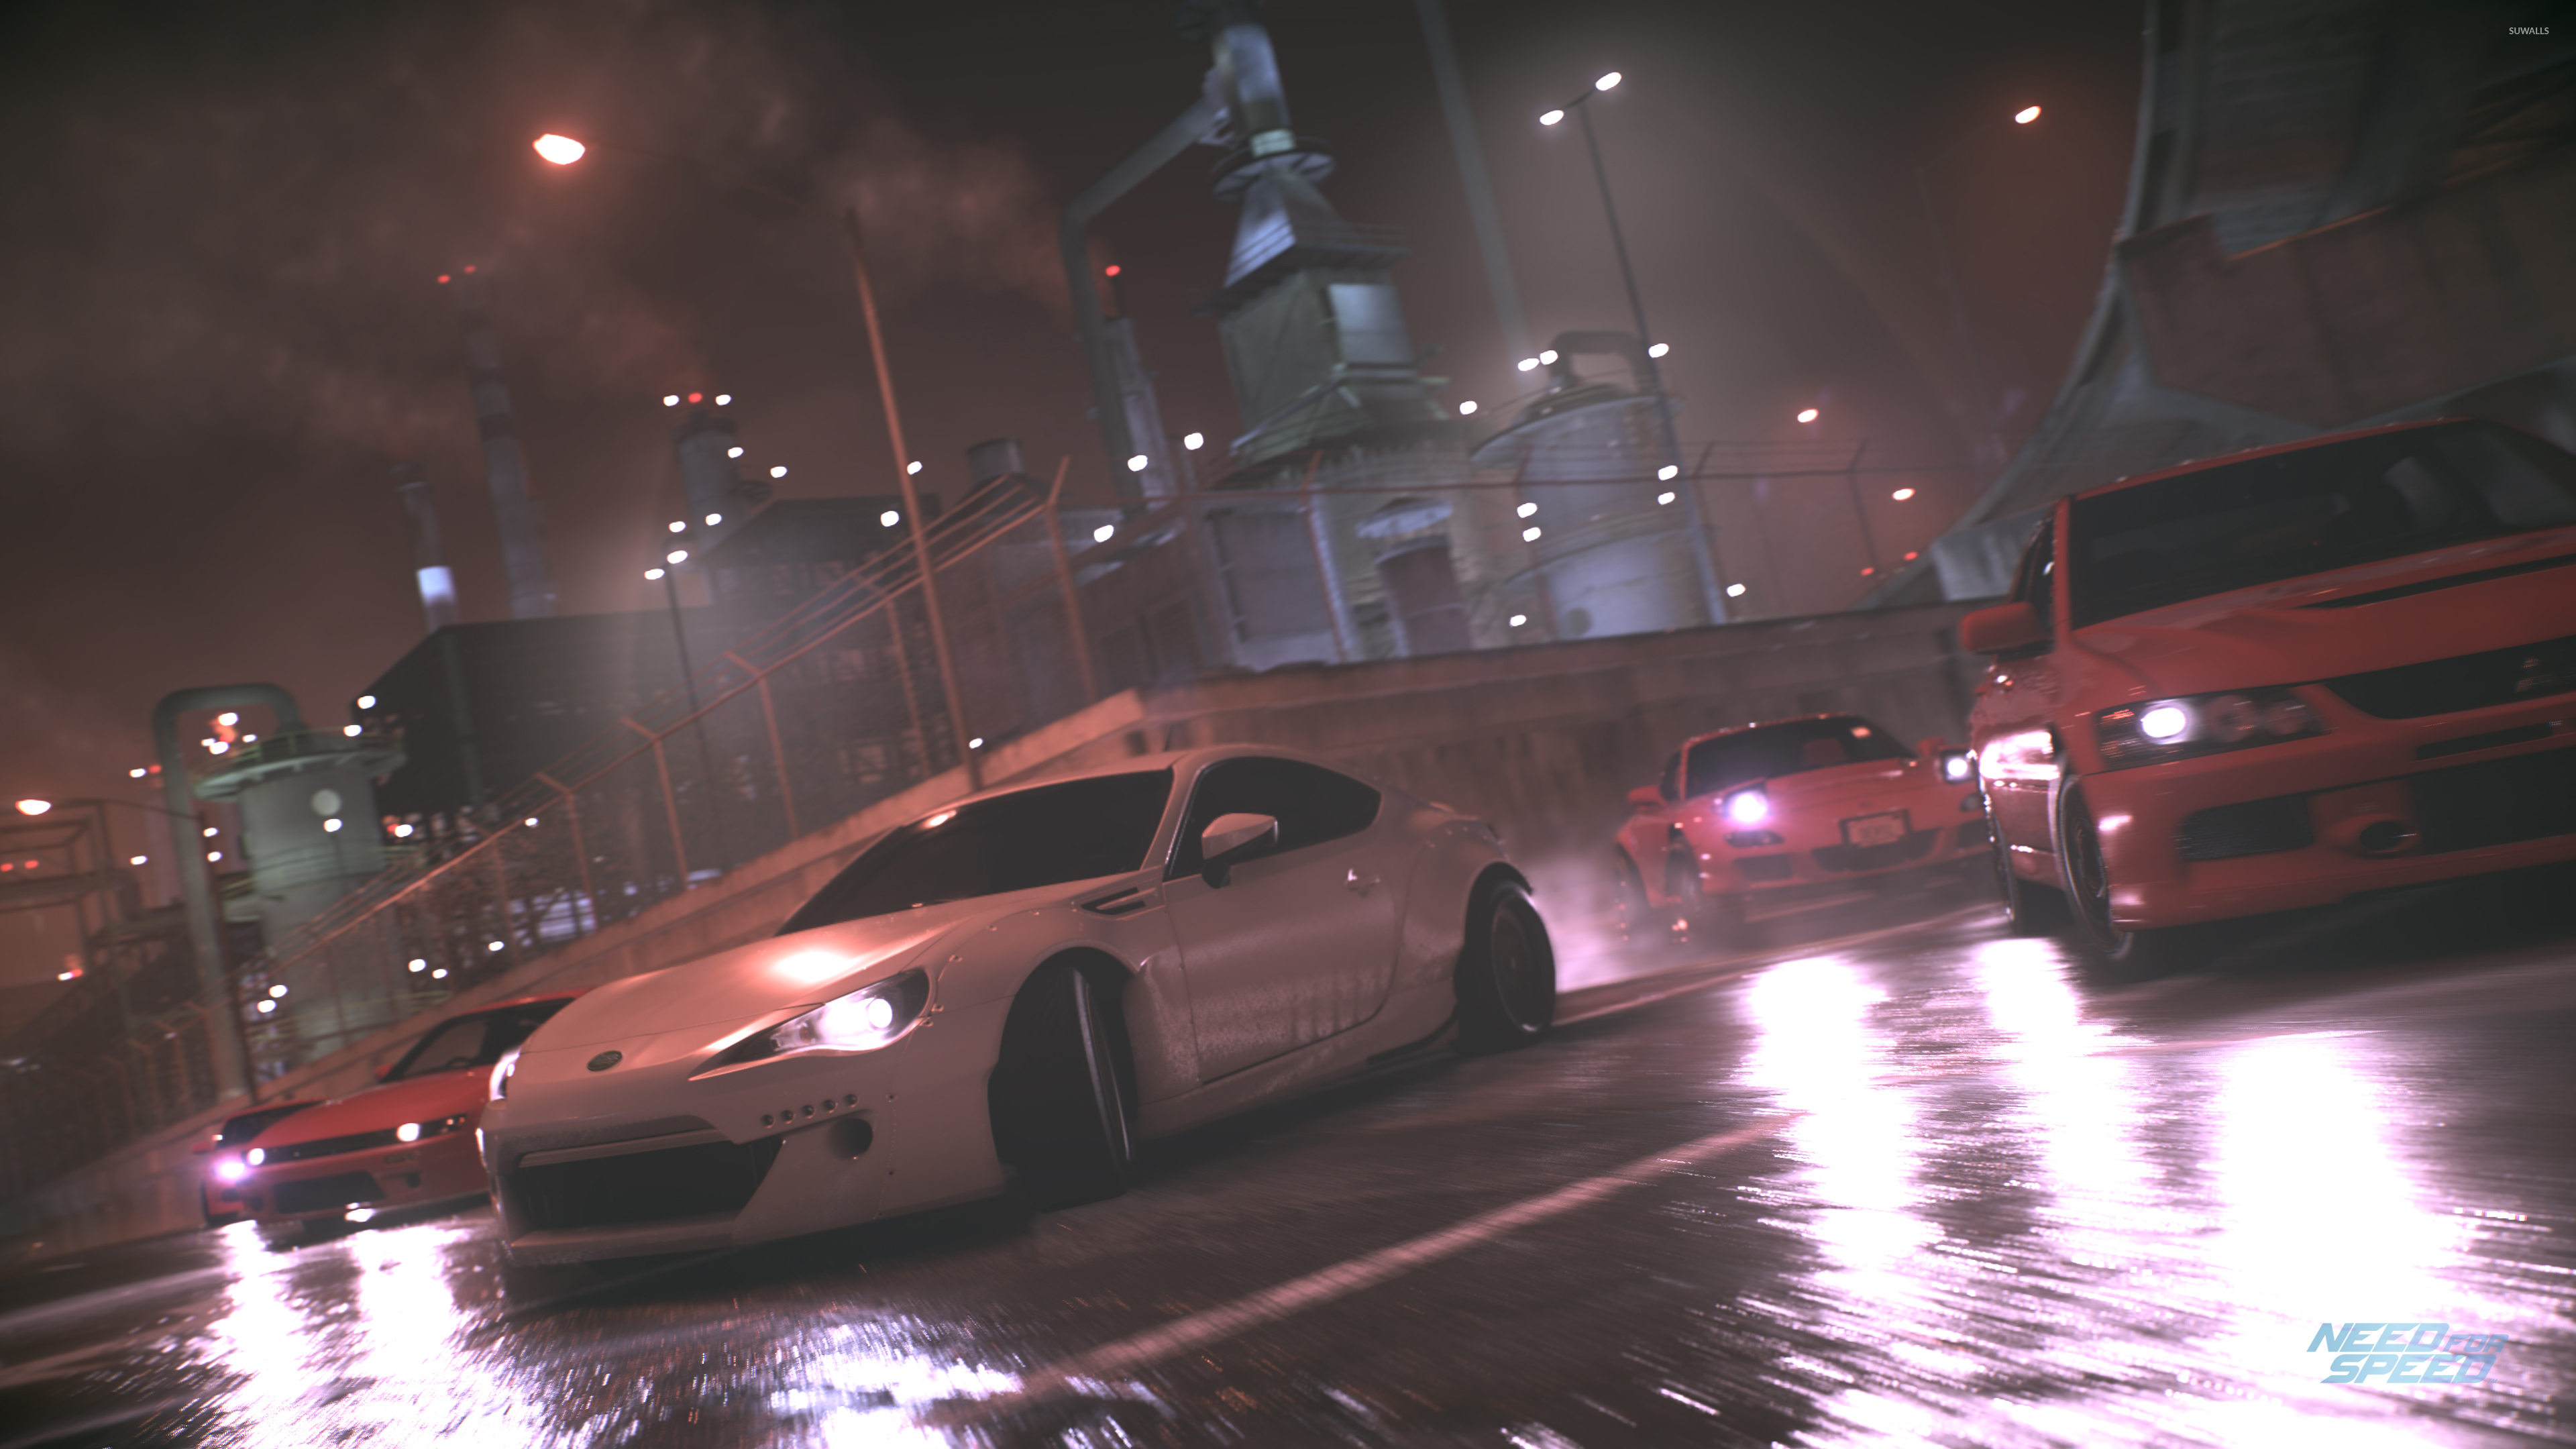 Car Games Wallpapers Hd 1080p Race On The Wet Roads In Need For Speed Wallpaper Game